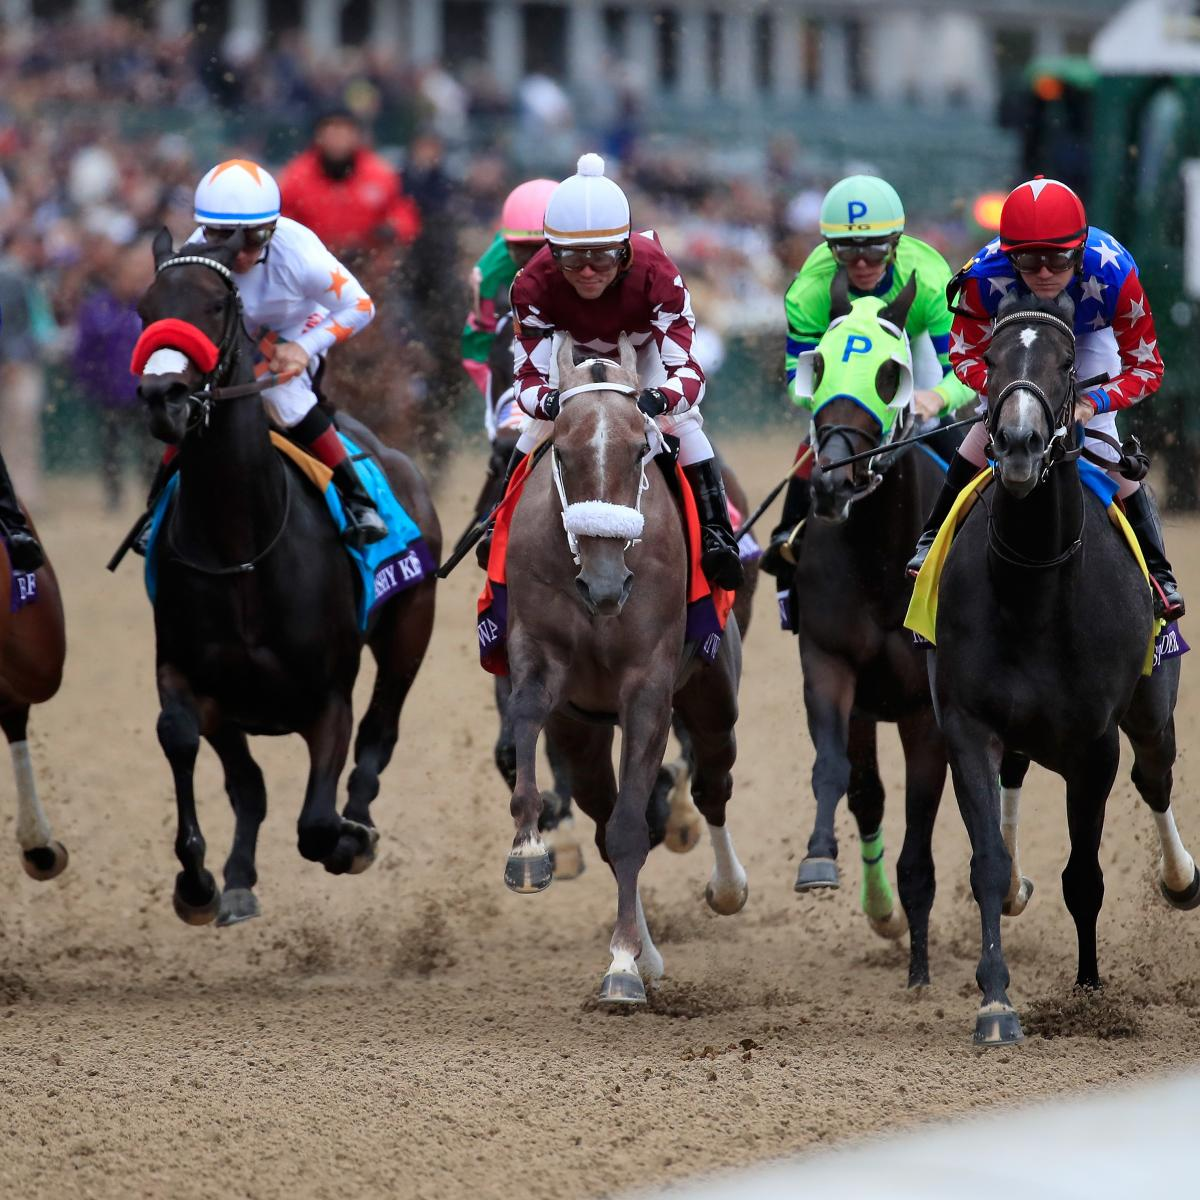 Breeders Cup 2018 Results Tracking Winners And Prize Money Payouts On Saturday Bleacher Report Latest News Videos And Highlights